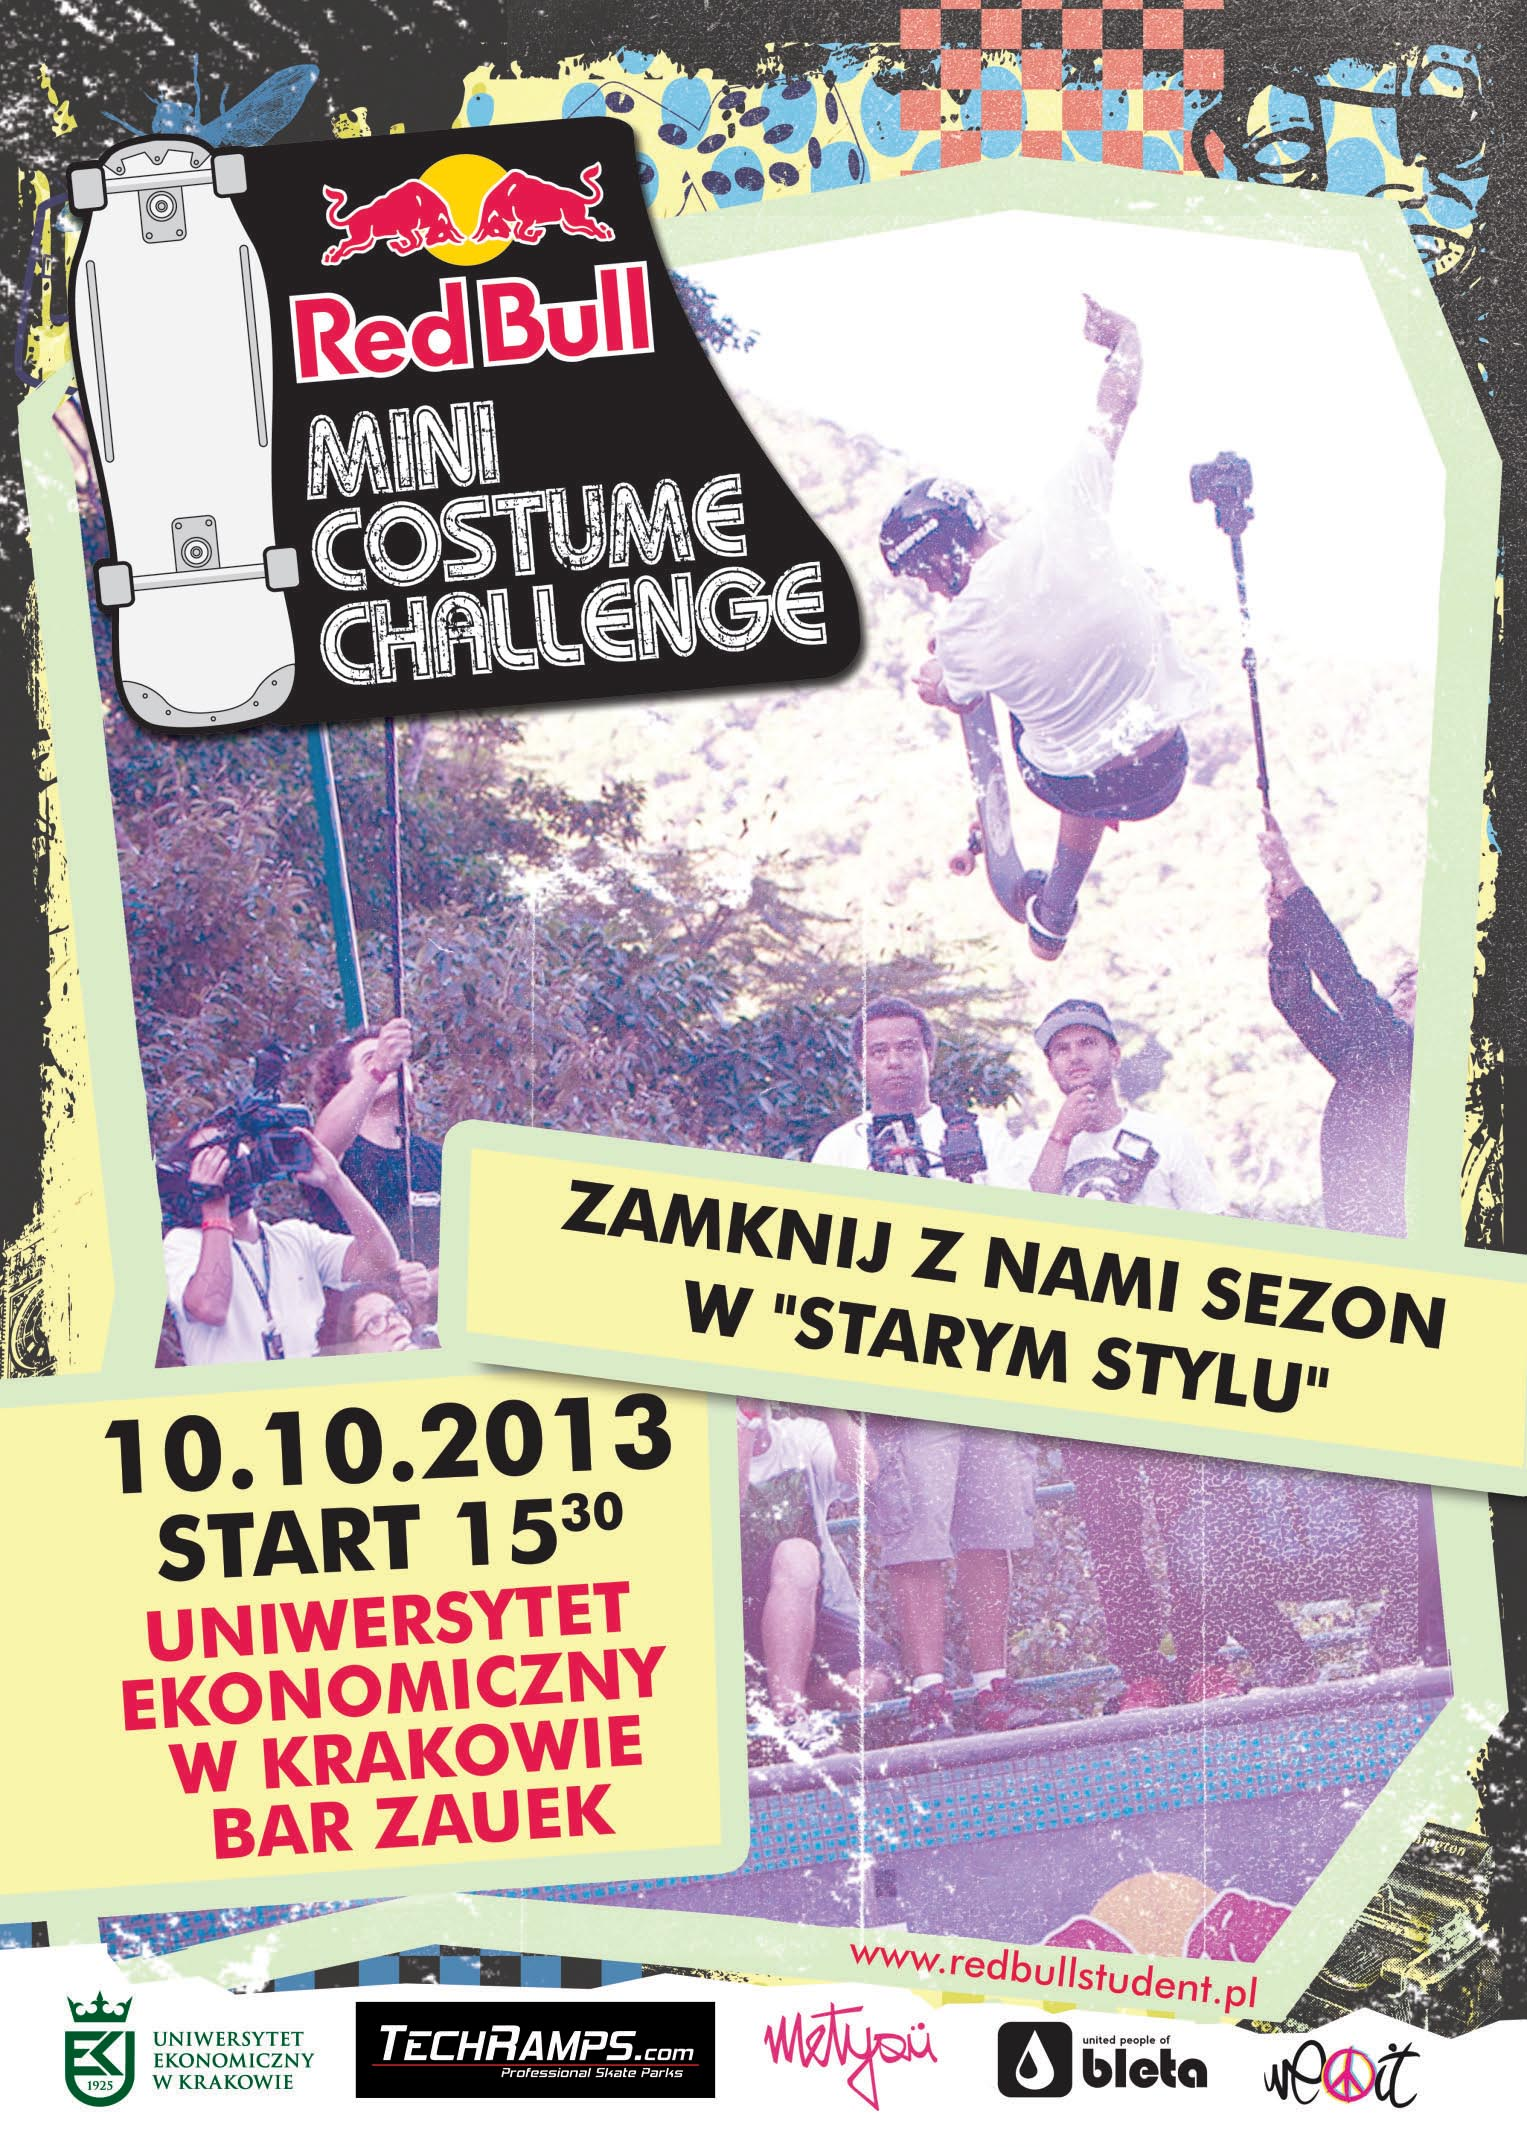 Red Bull Mini Costume Challenge 2013 Kraków